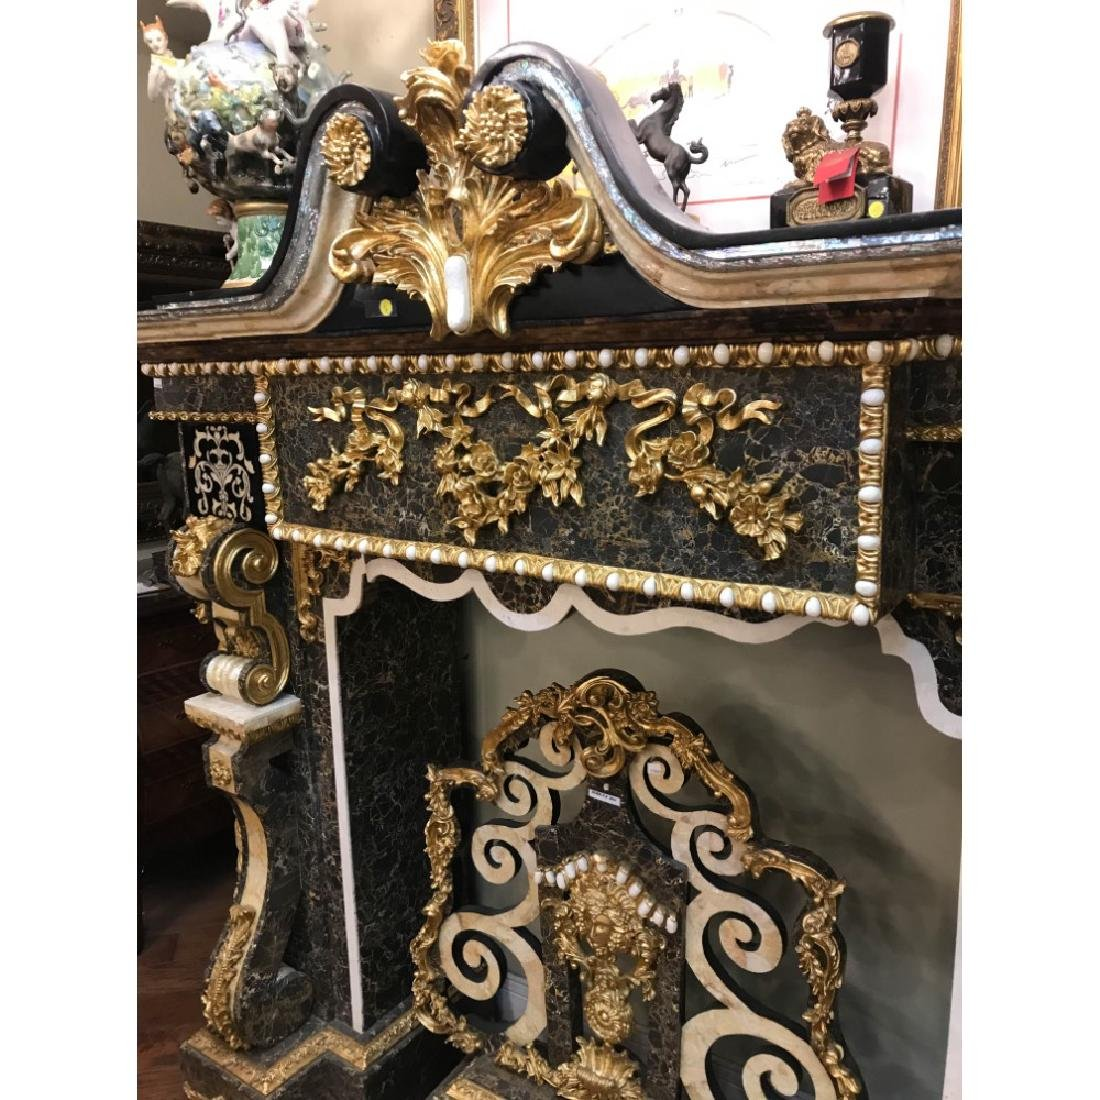 Marble, Mother of Pearl, Gold Leaf Fireplace - 2